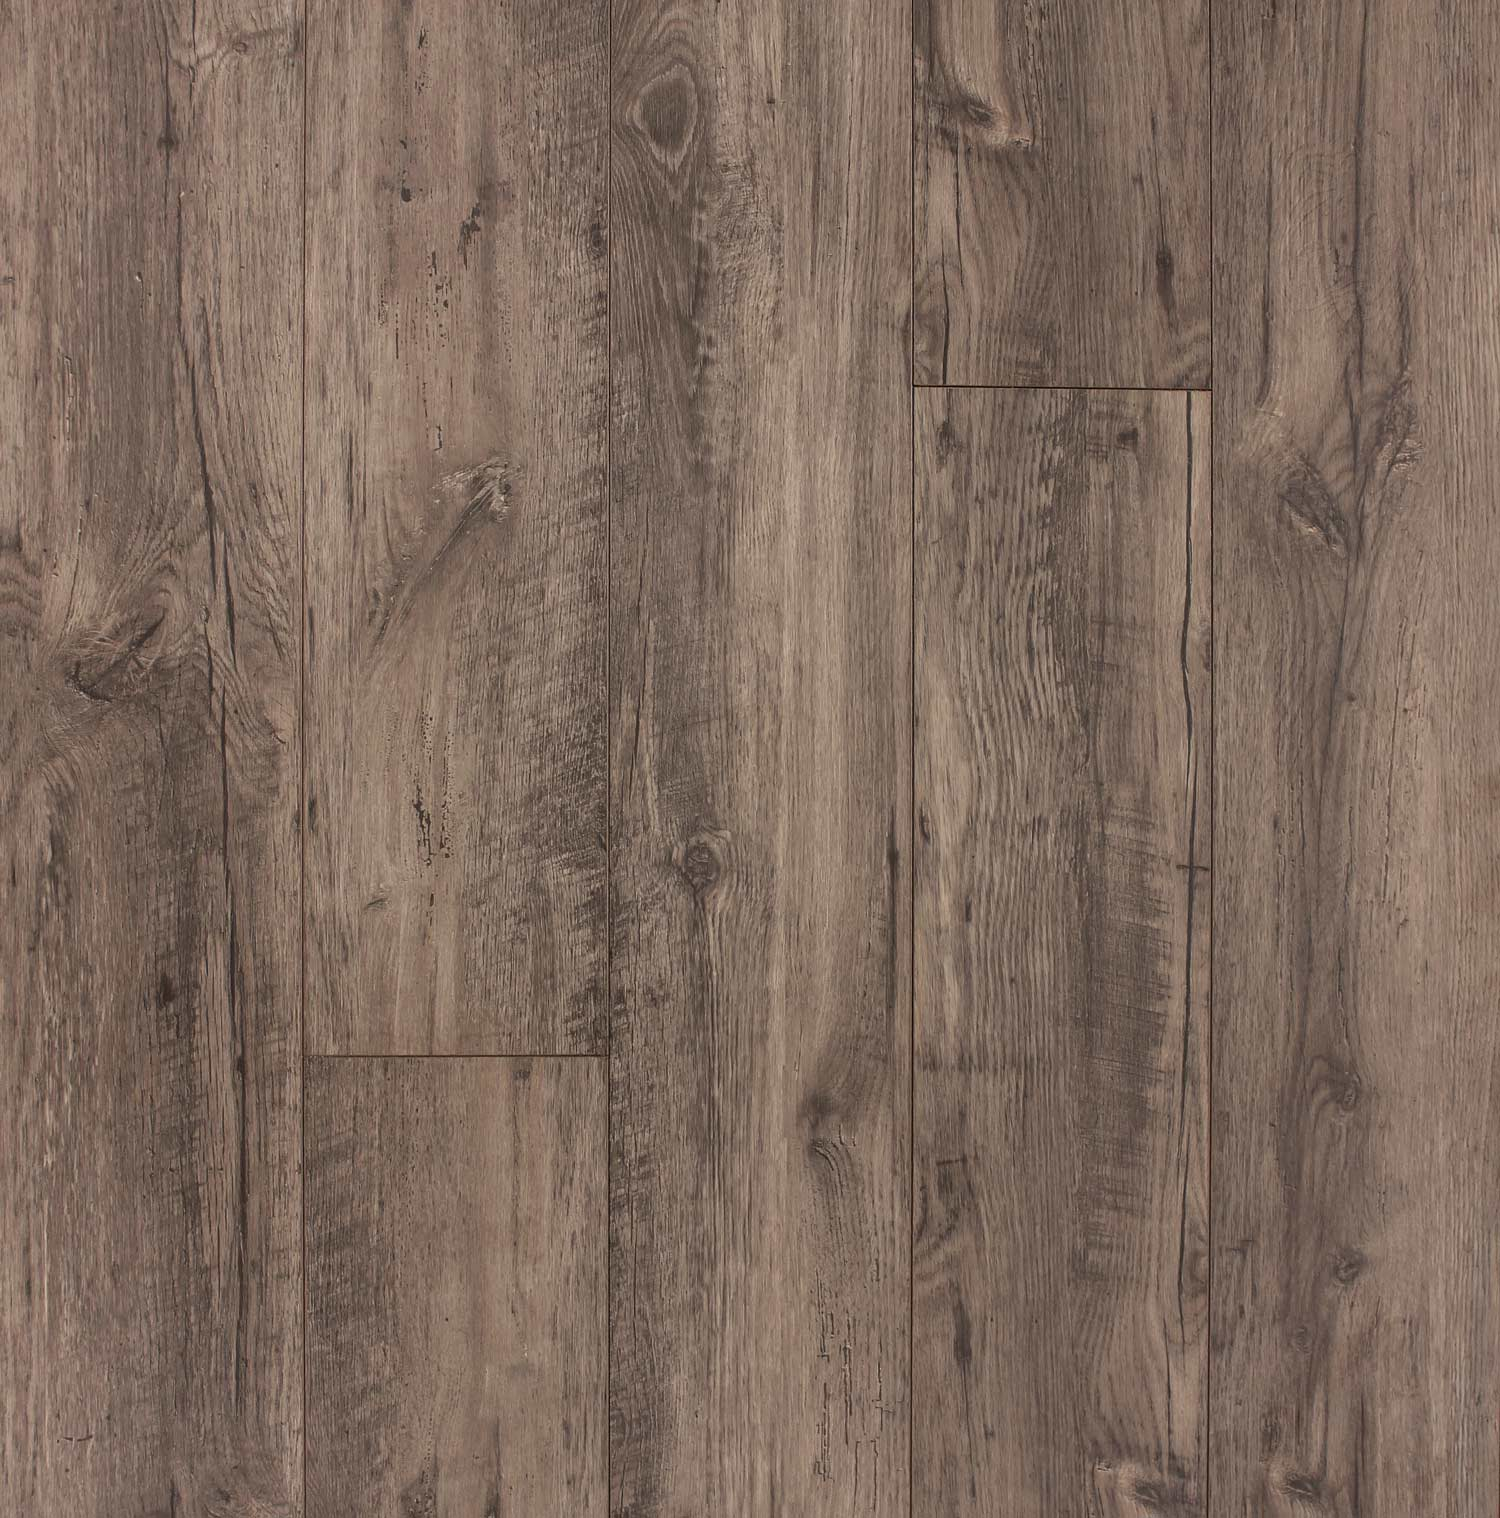 Atlantic Oak Proline Floors Australia